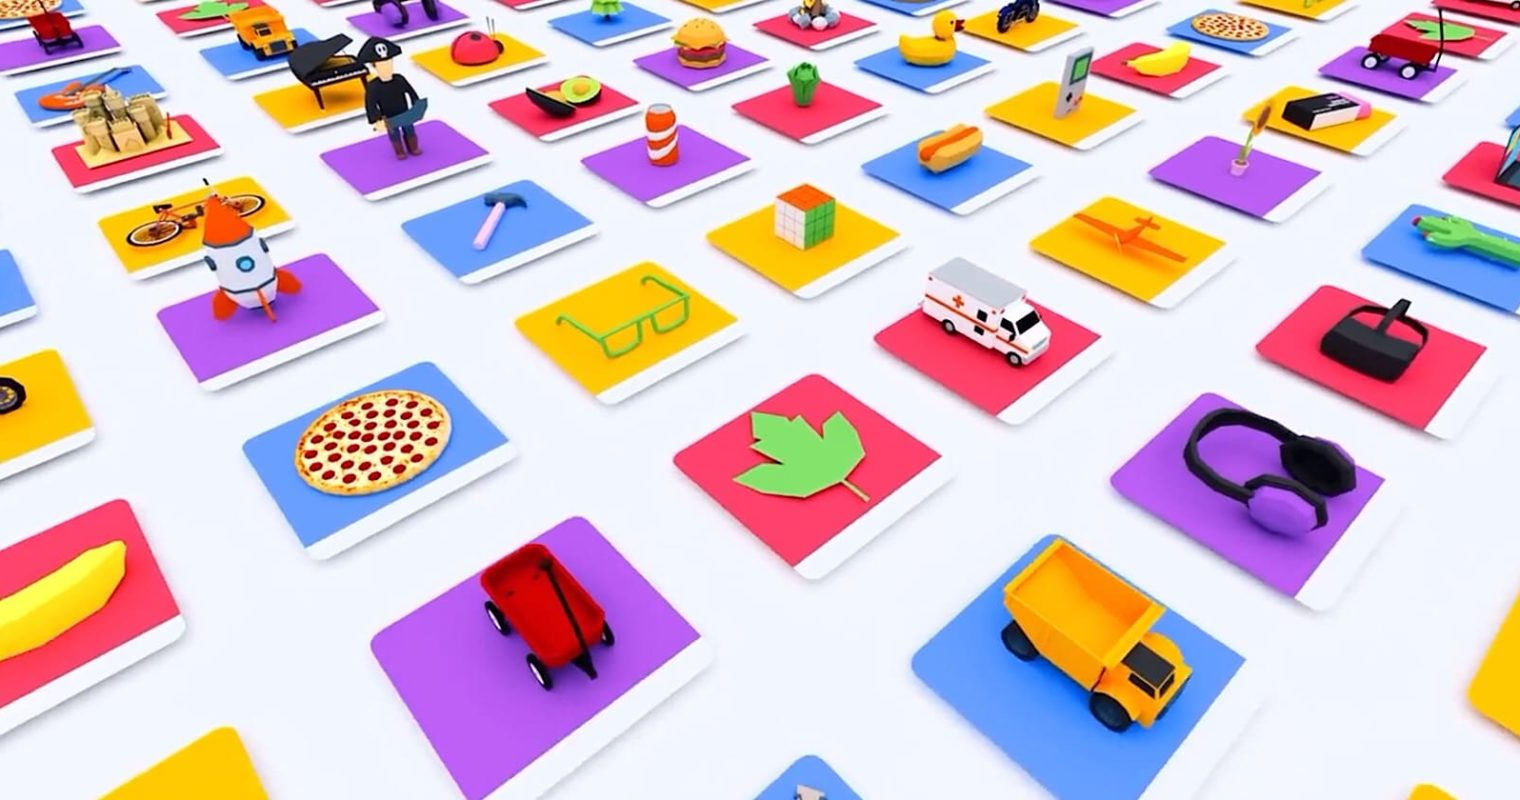 Google Created a Search Engine for Finding 3D Objects to Use in Apps